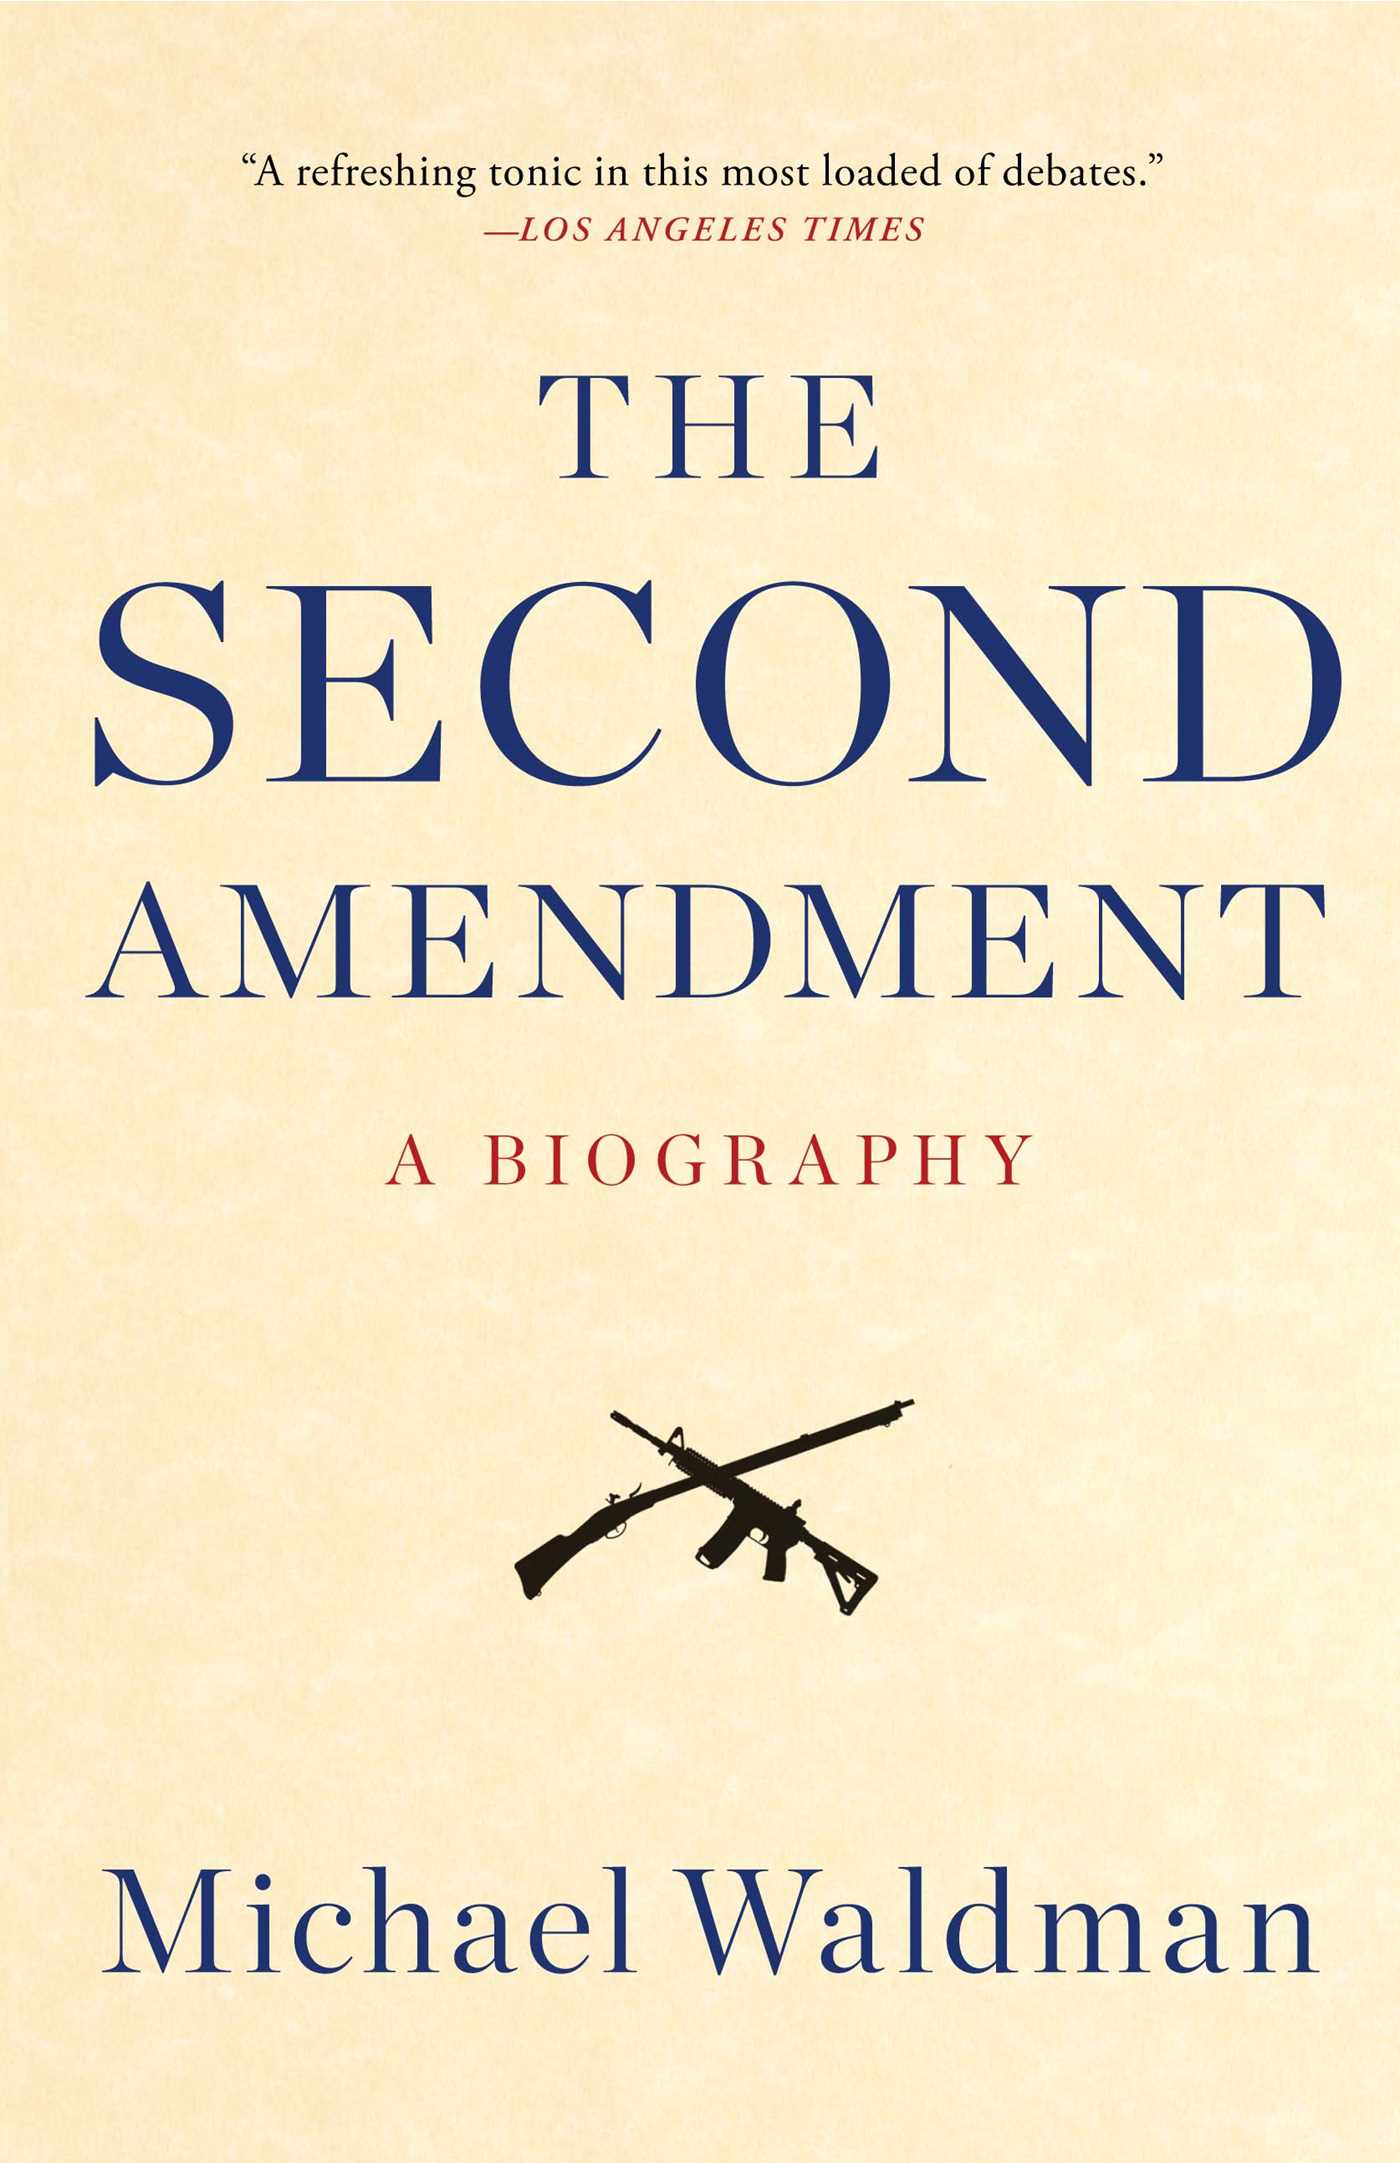 The second amendment 9781476747453 hr